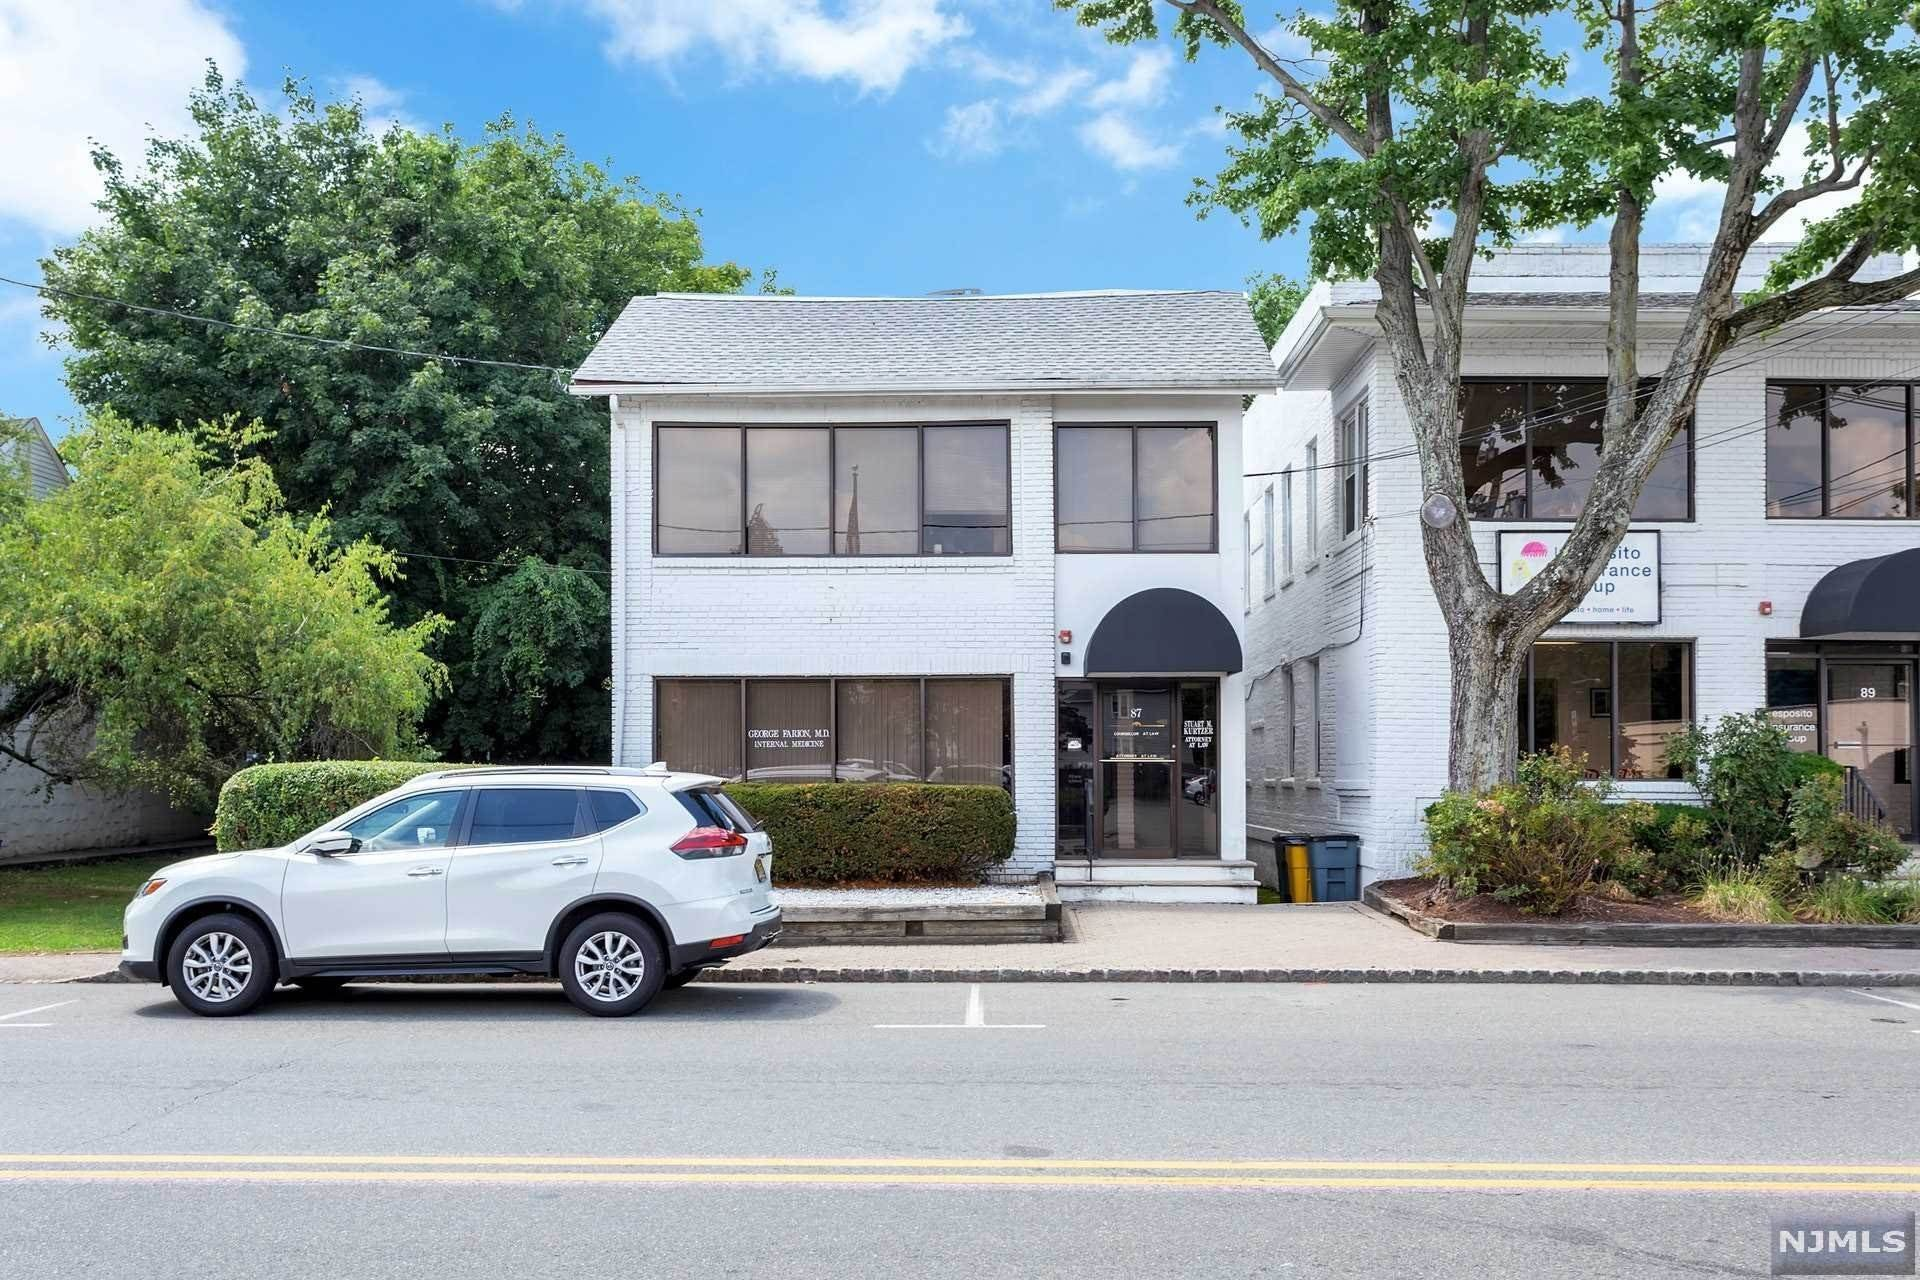 Commercial / Office for Sale at 87 Franklin Avenue Nutley, New Jersey,07110 United States